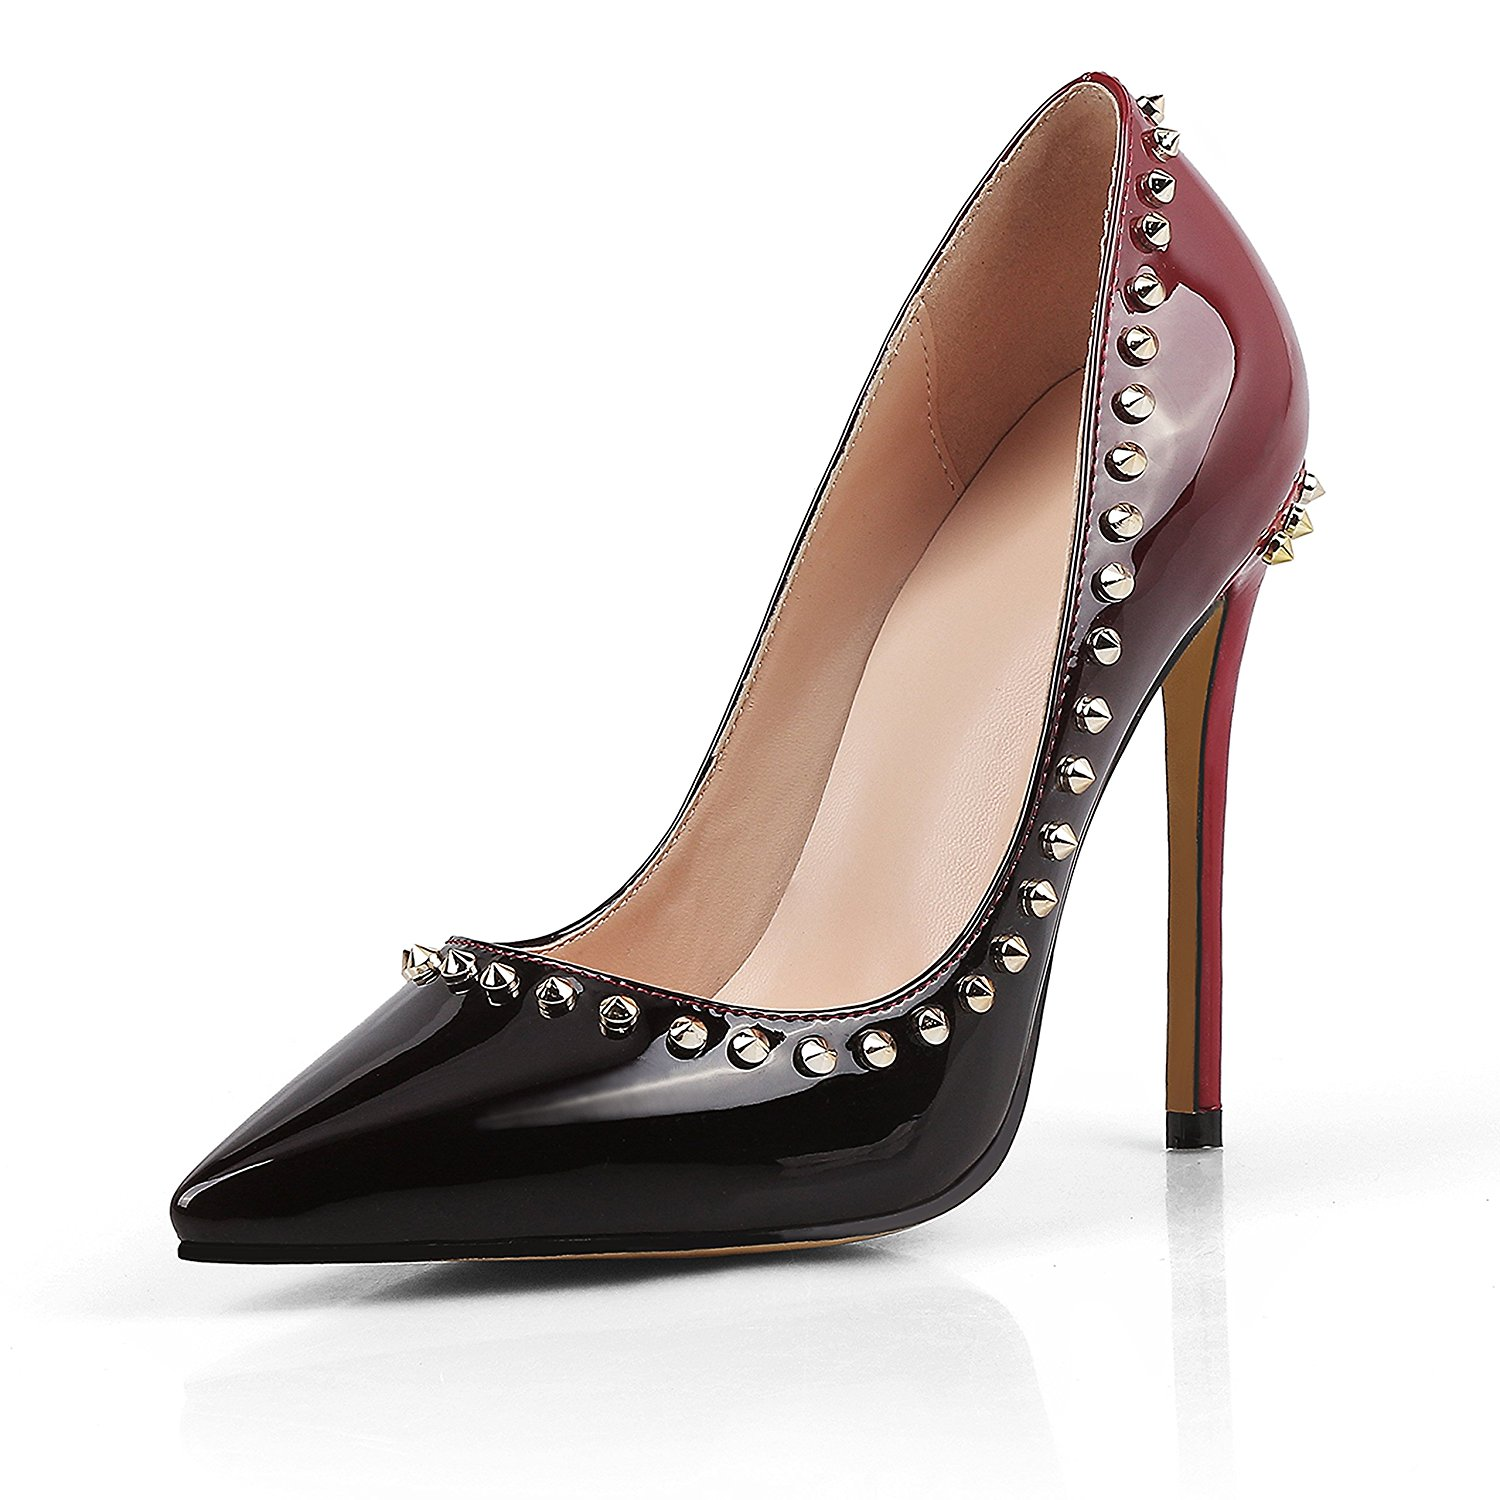 a76656fe1aef Get Quotations · Chirs-T Women Summer High Heels Silver Rivets Pointed Toe Shoes  Stilettos Dress Pumps 5